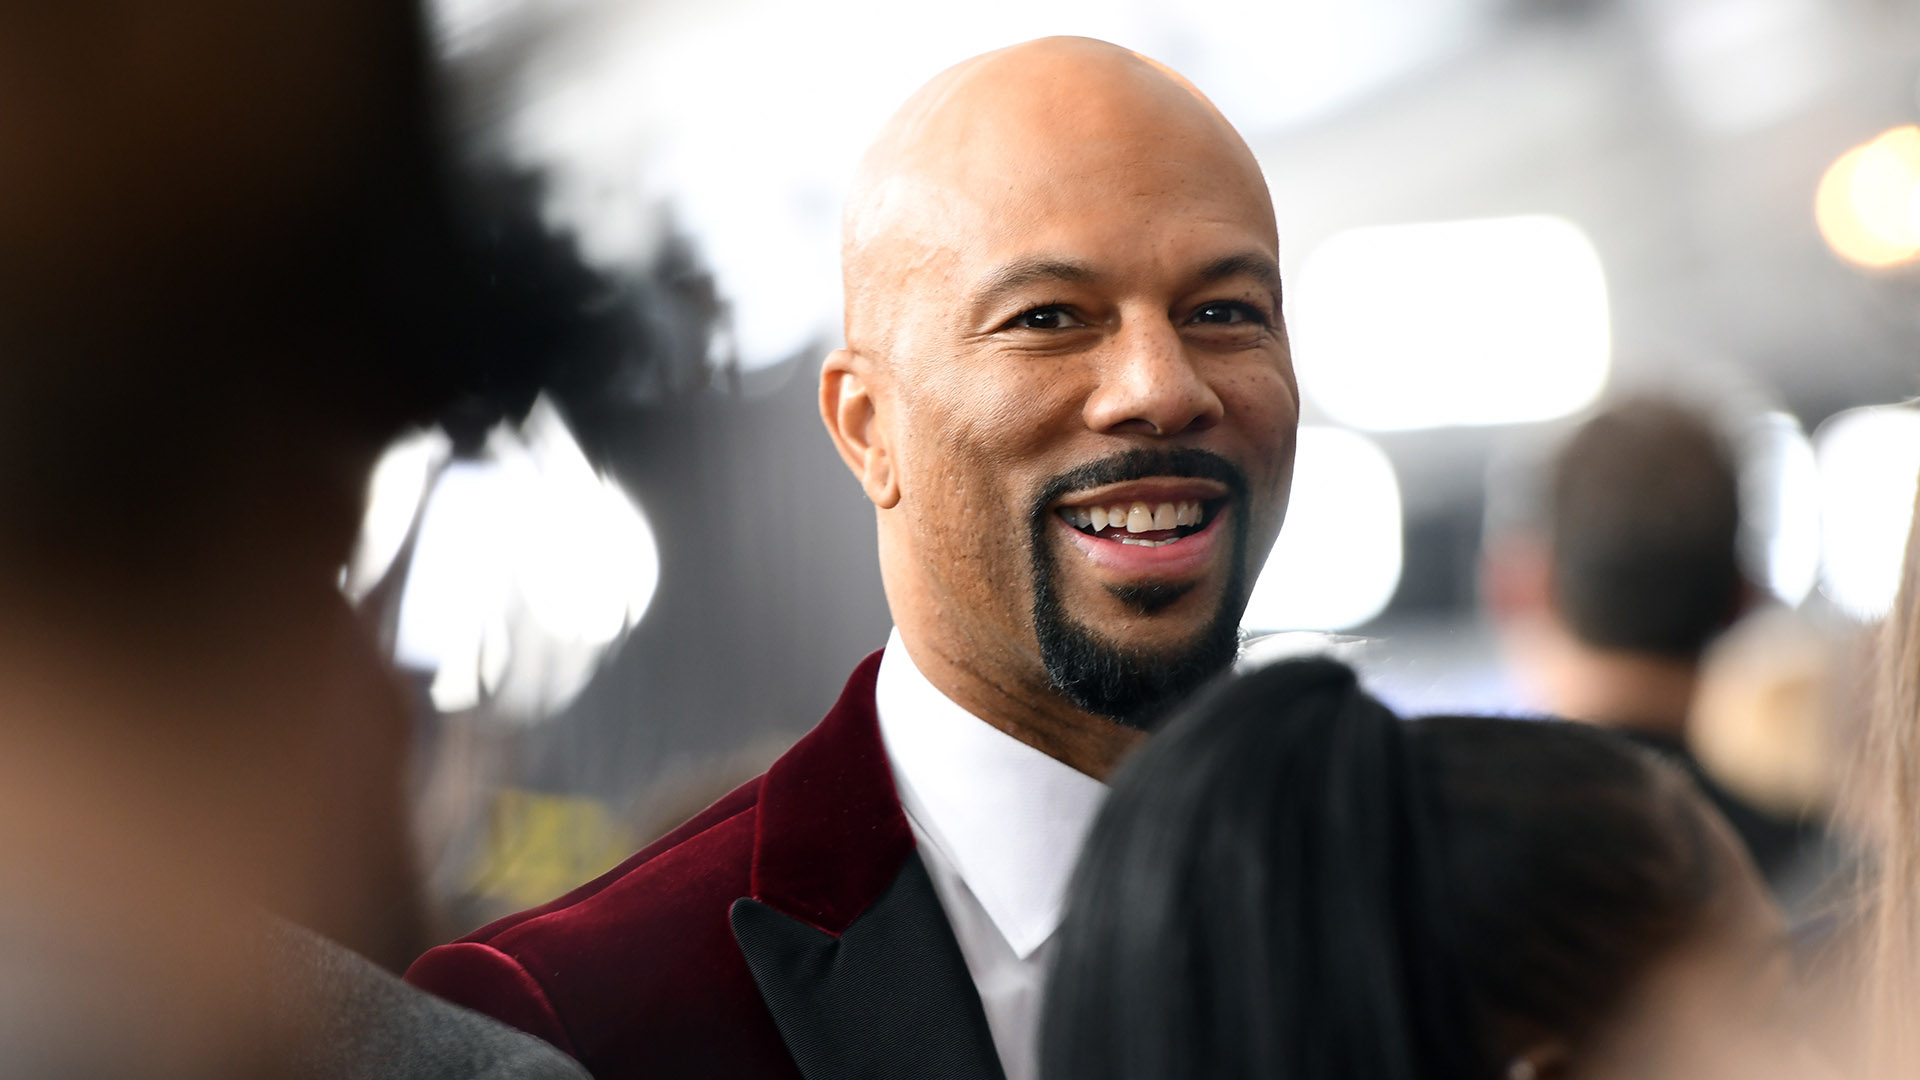 Actor/rapper Common joins one of the hottest fashion trends by wearing a merlot-colored velvet suit.